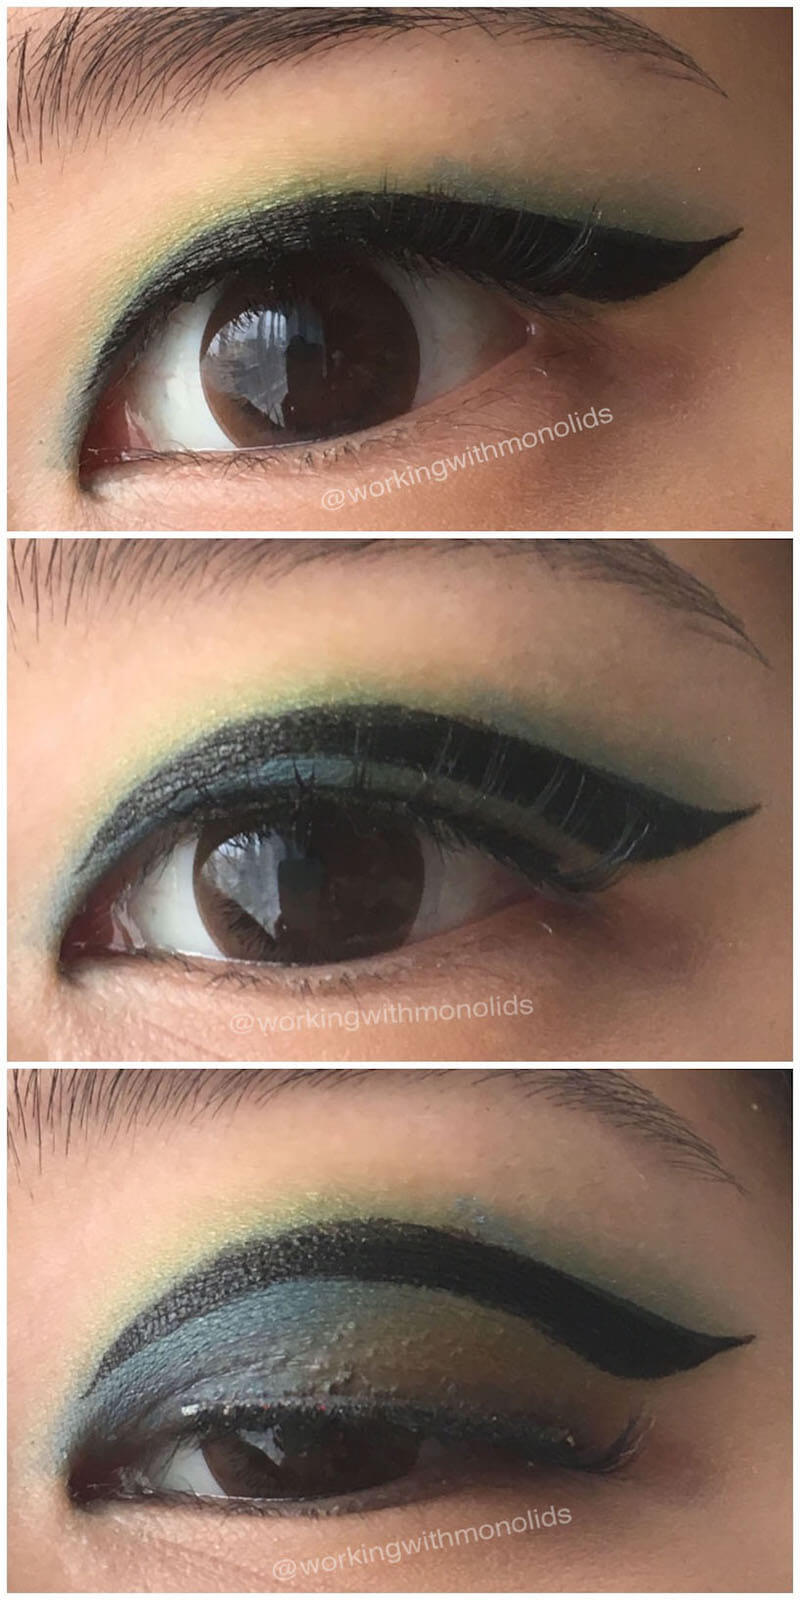 A colorful, creative eye look for monolids that demonstrates the placement of eyeliner and eyeshadow.